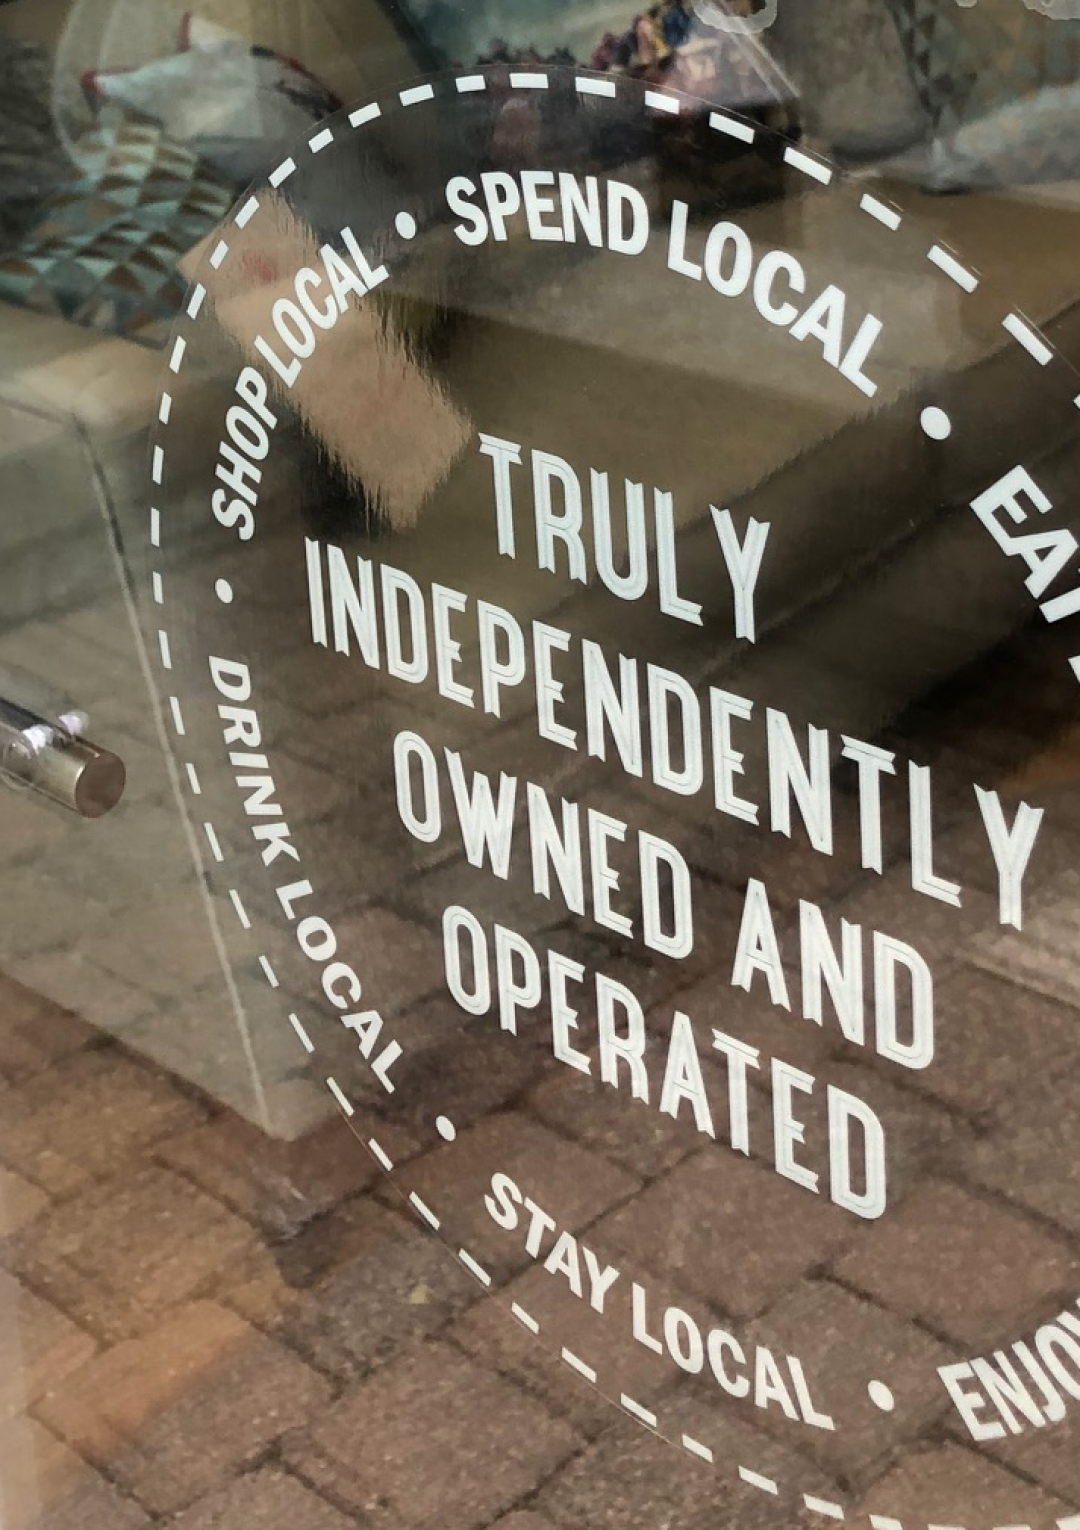 Which shops are open in Wainwright's Yard?